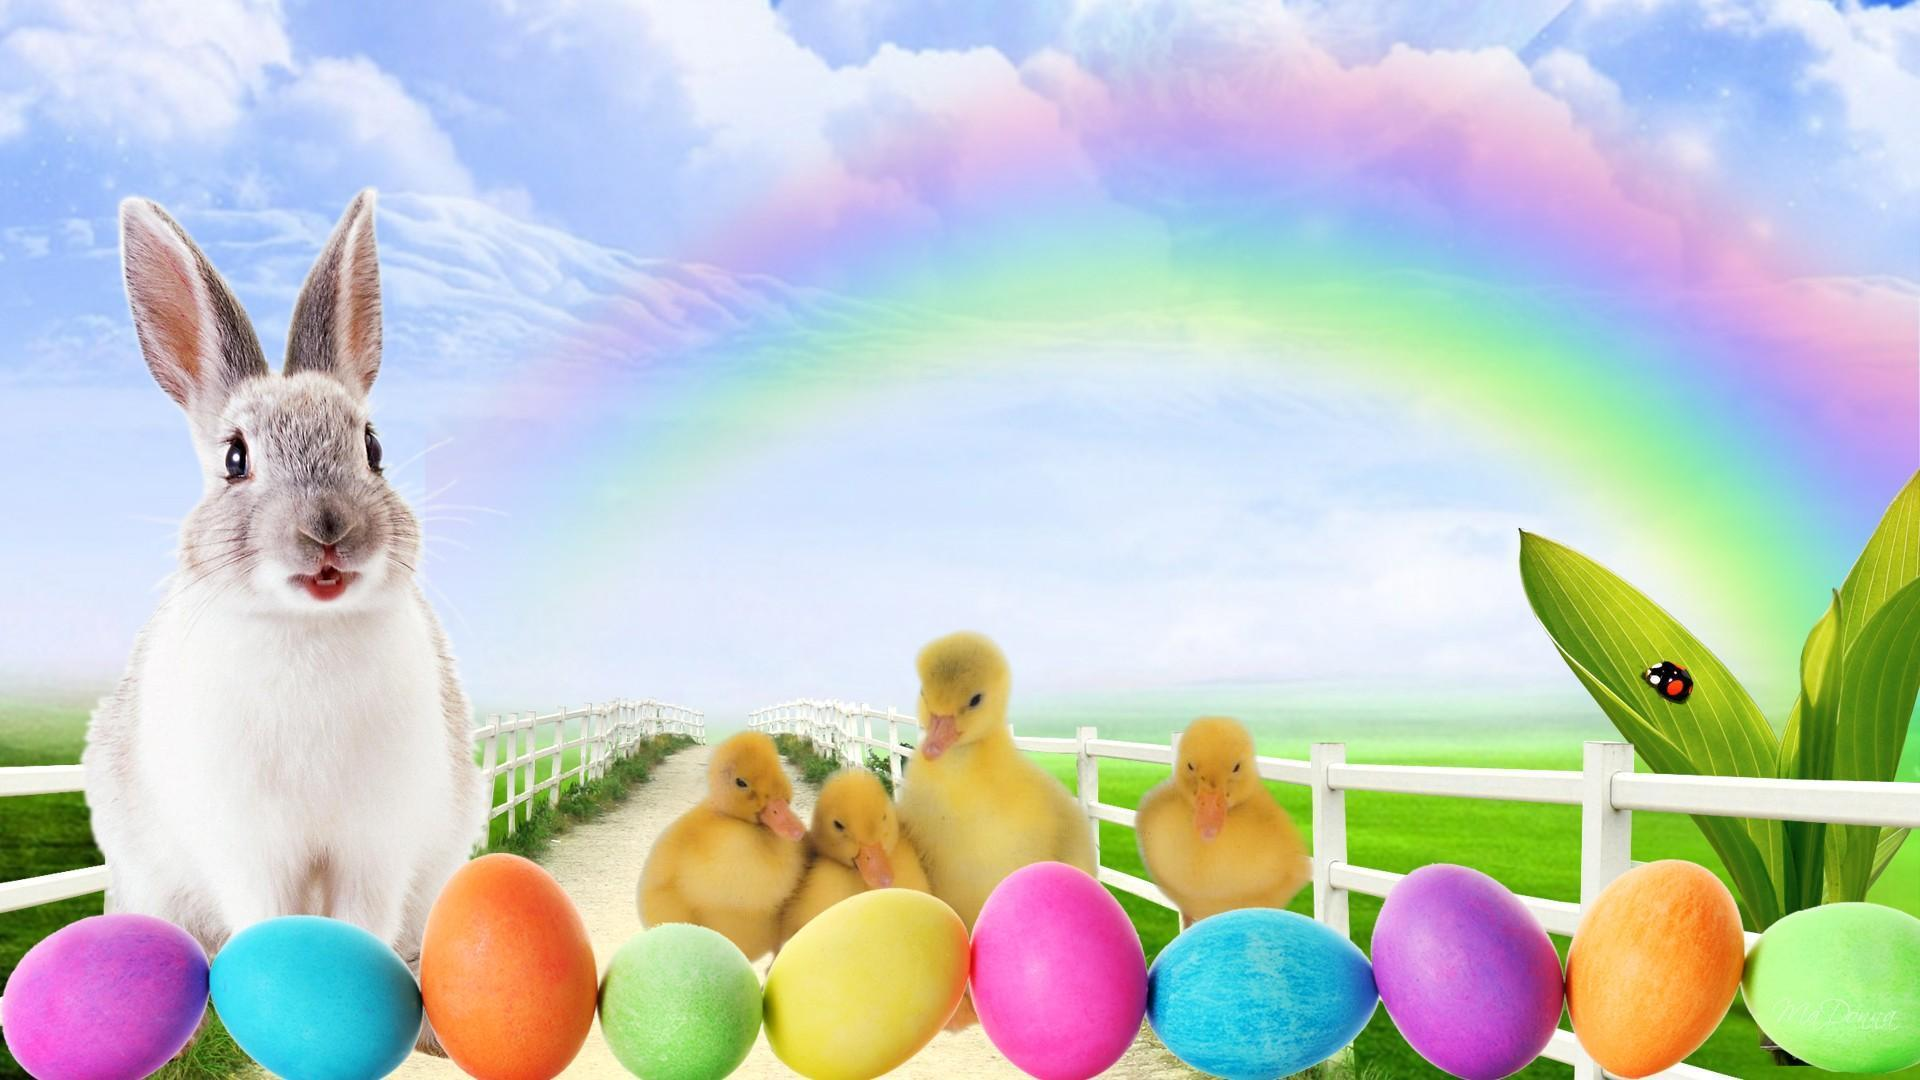 Easter Bunny Wallpapers 1920x1080